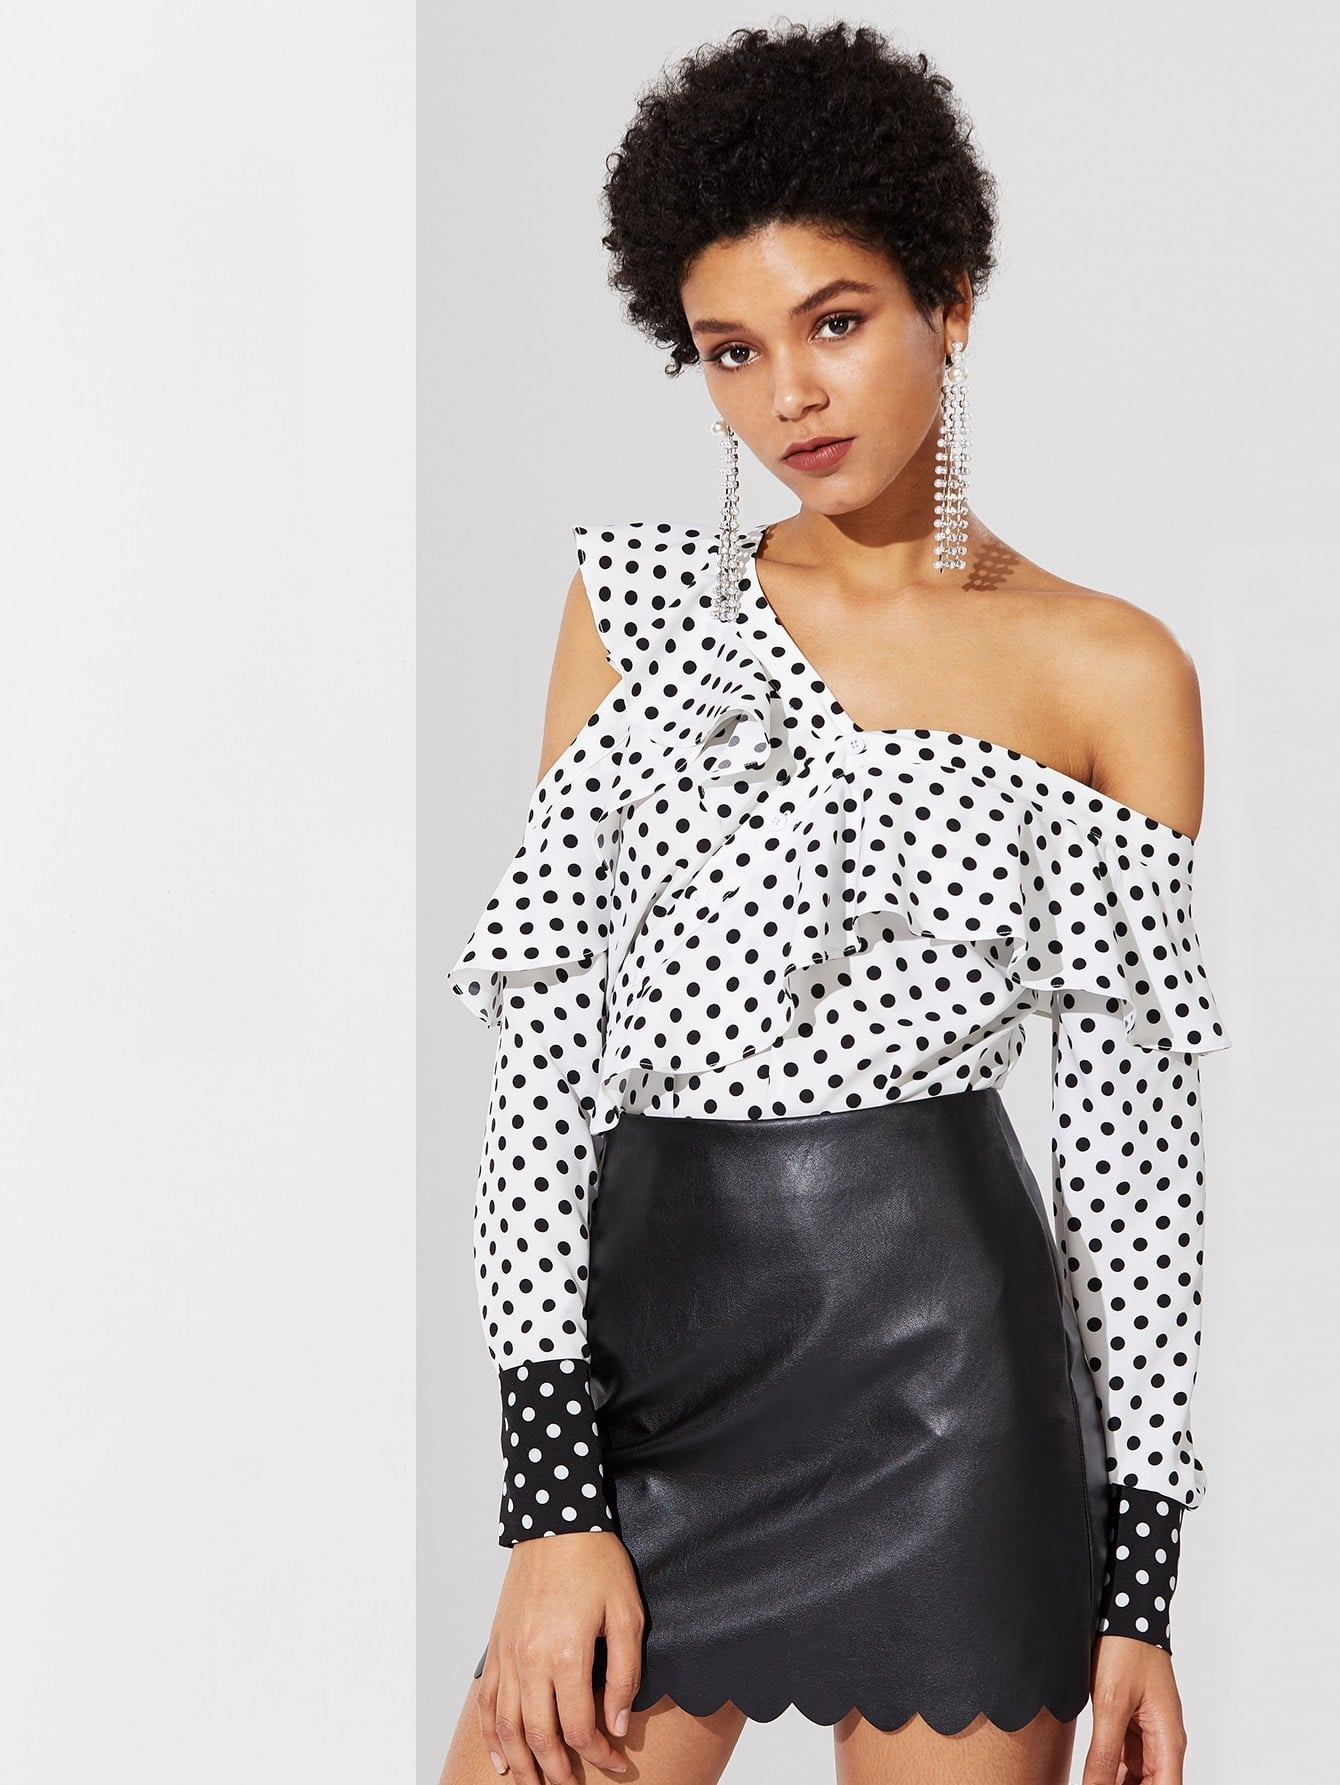 Flounce Asymmetric Shoulder Polka Dot Blouse flounce one shoulder polka dot dress